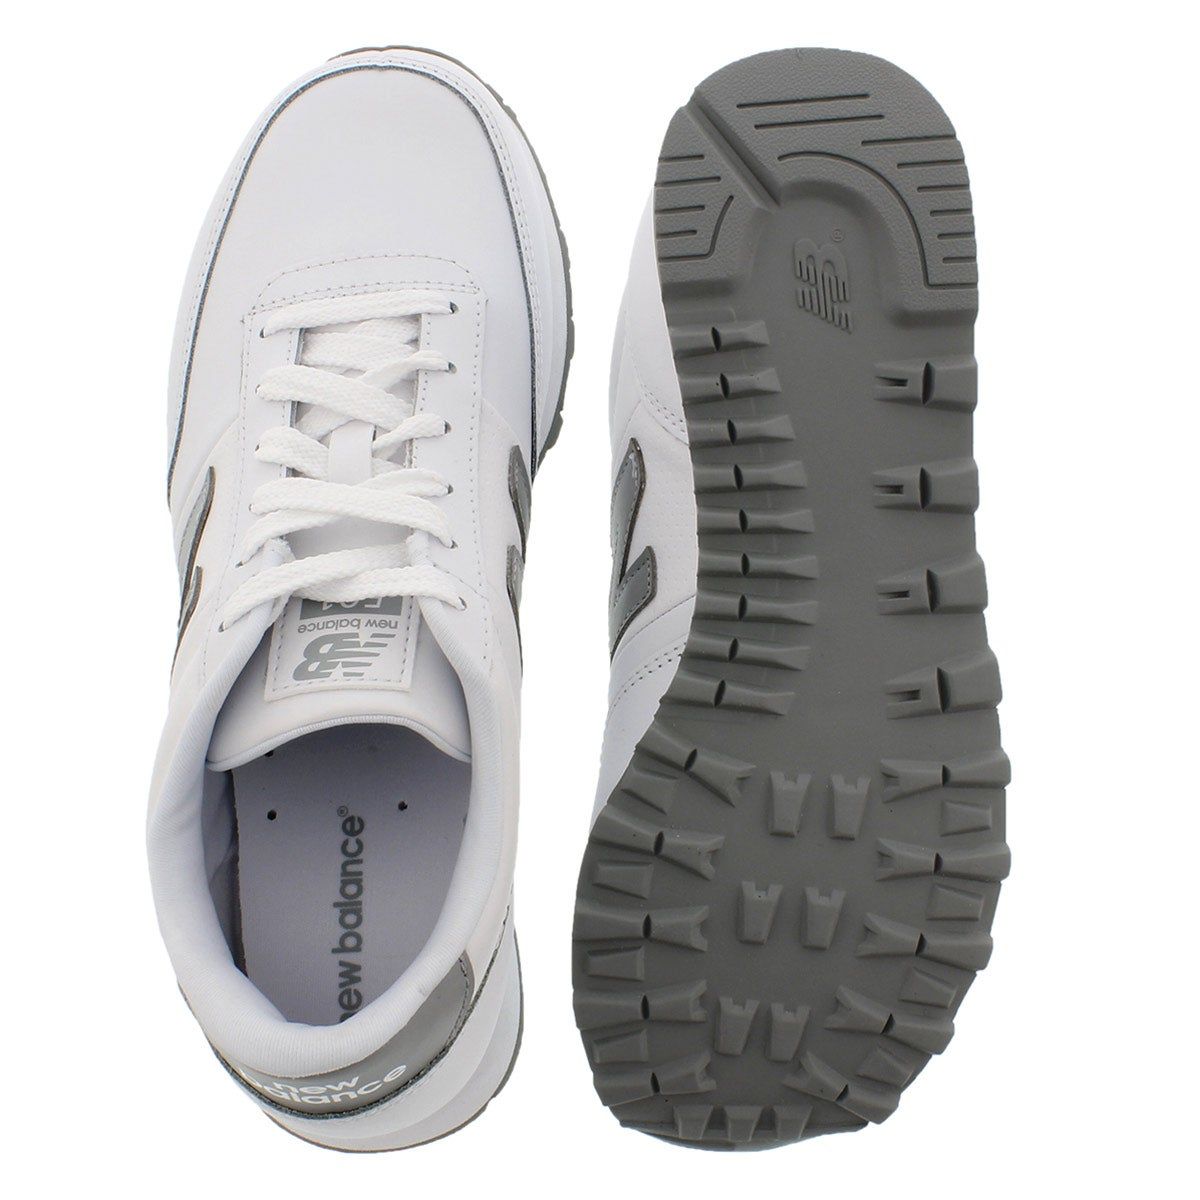 Lds 501 white/grey lace up sneaker